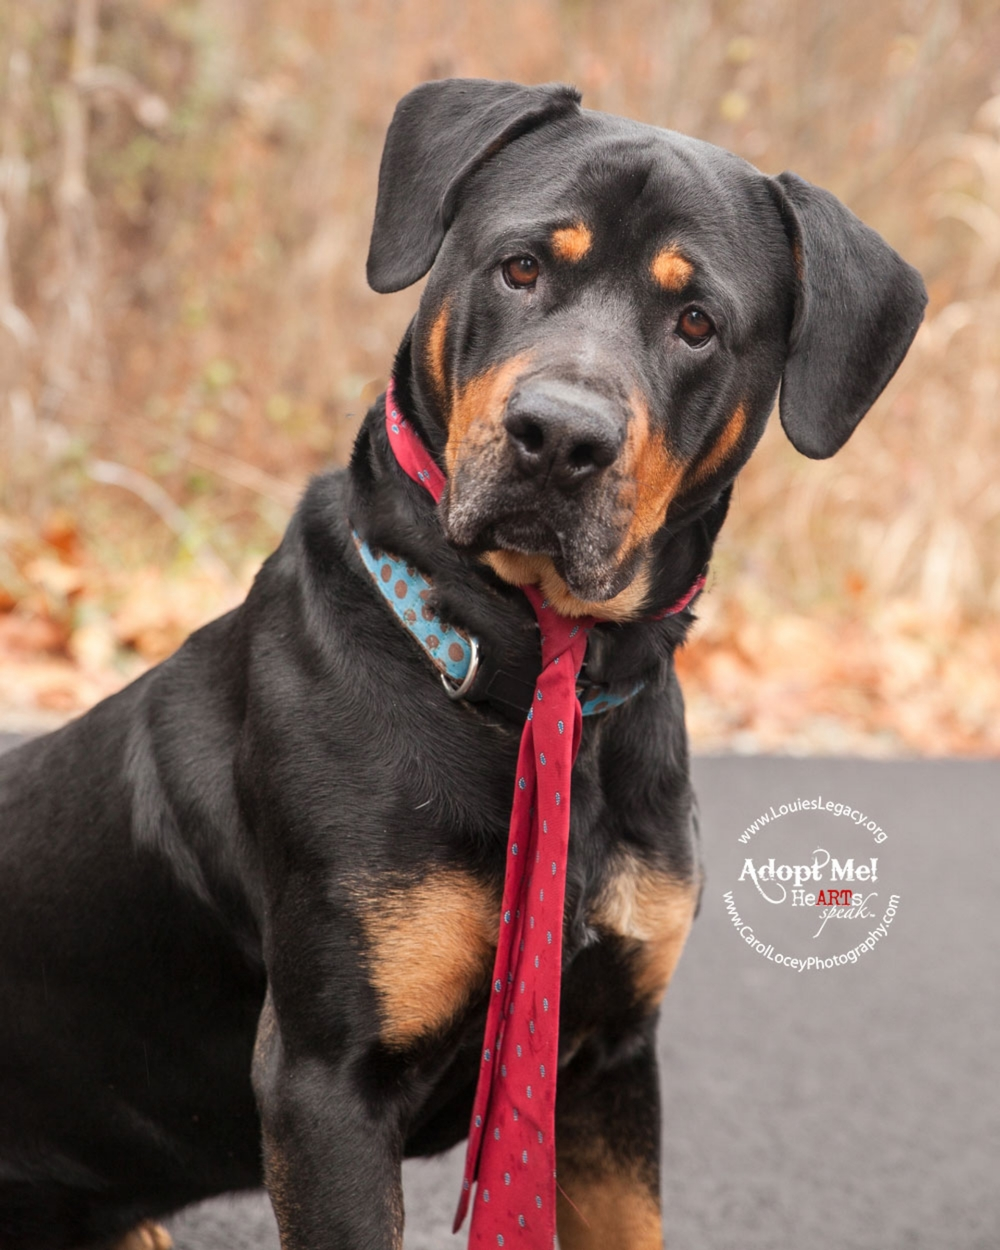 This is Vance and he is a Rottie mix (or full bred?) rescue from Louie's Legacy.  He is a big goofball and this photo perfectly captured his silly side.  I'm happy to report that Vance was adopted and is living his happily ever after!